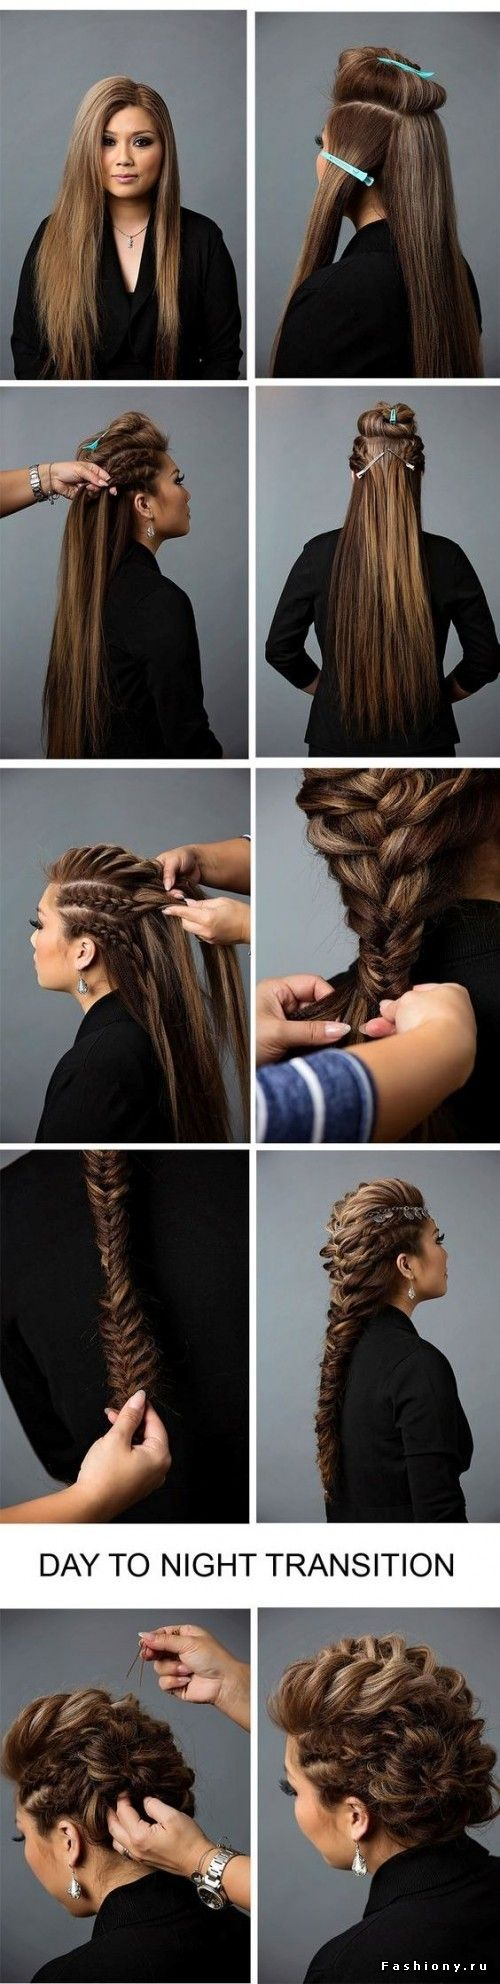 best kapsels images on pinterest hairstyle ideas cute